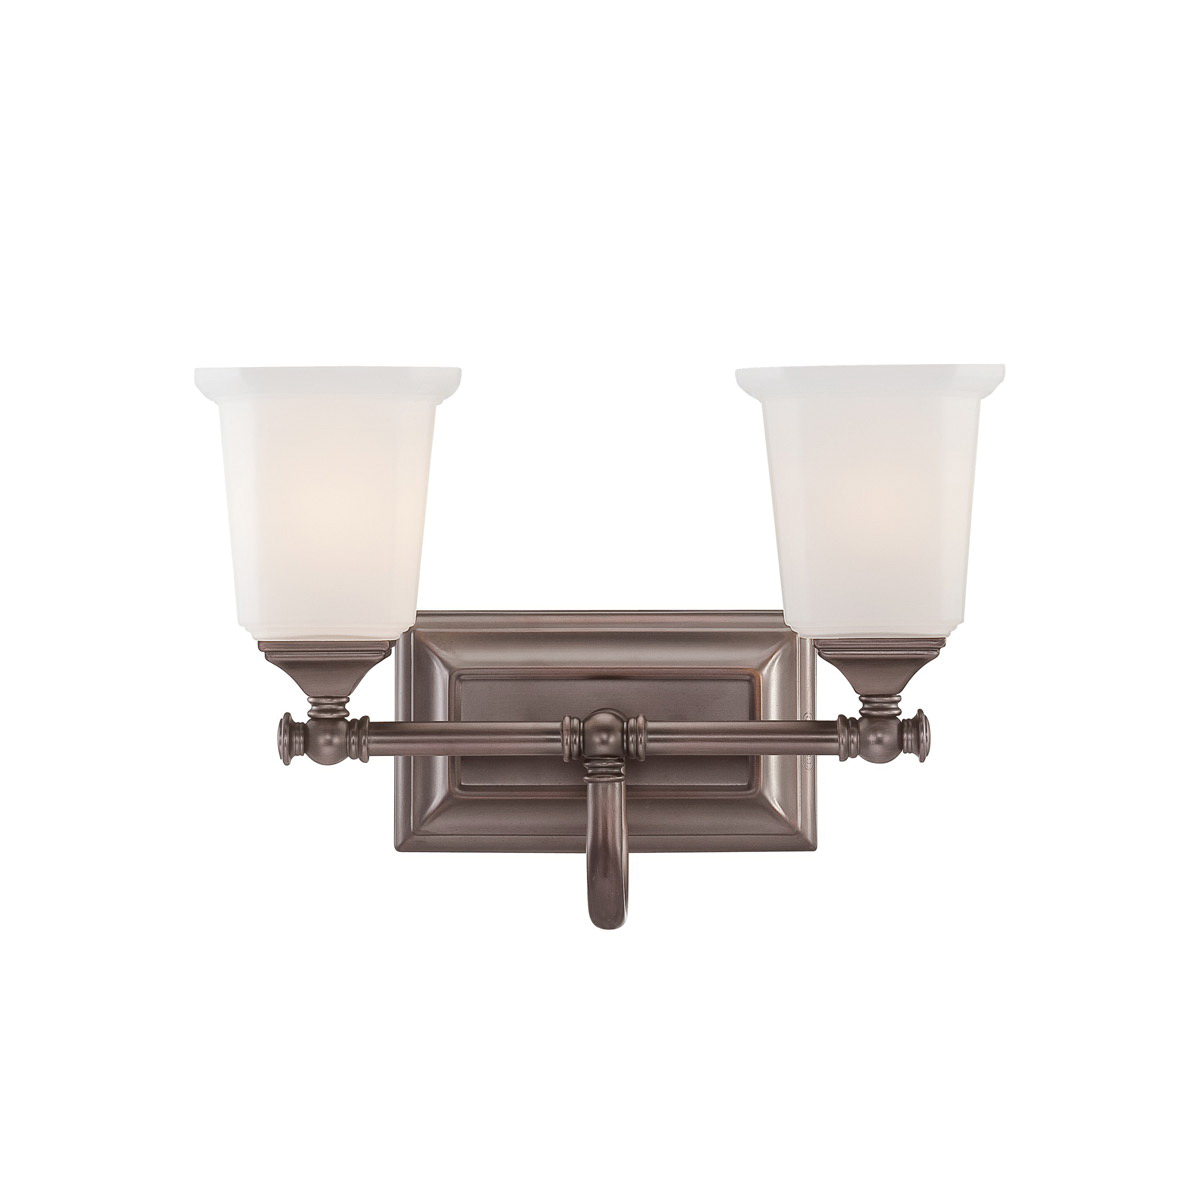 Quoizel Lighting Nl8602ho 2 Light Bath Light Fixture 200 Watt 120 Volt Ac Harbor Bronze Nicholas Bath Vanity Light Indoor Fixtures Lighting Walters Wholesale